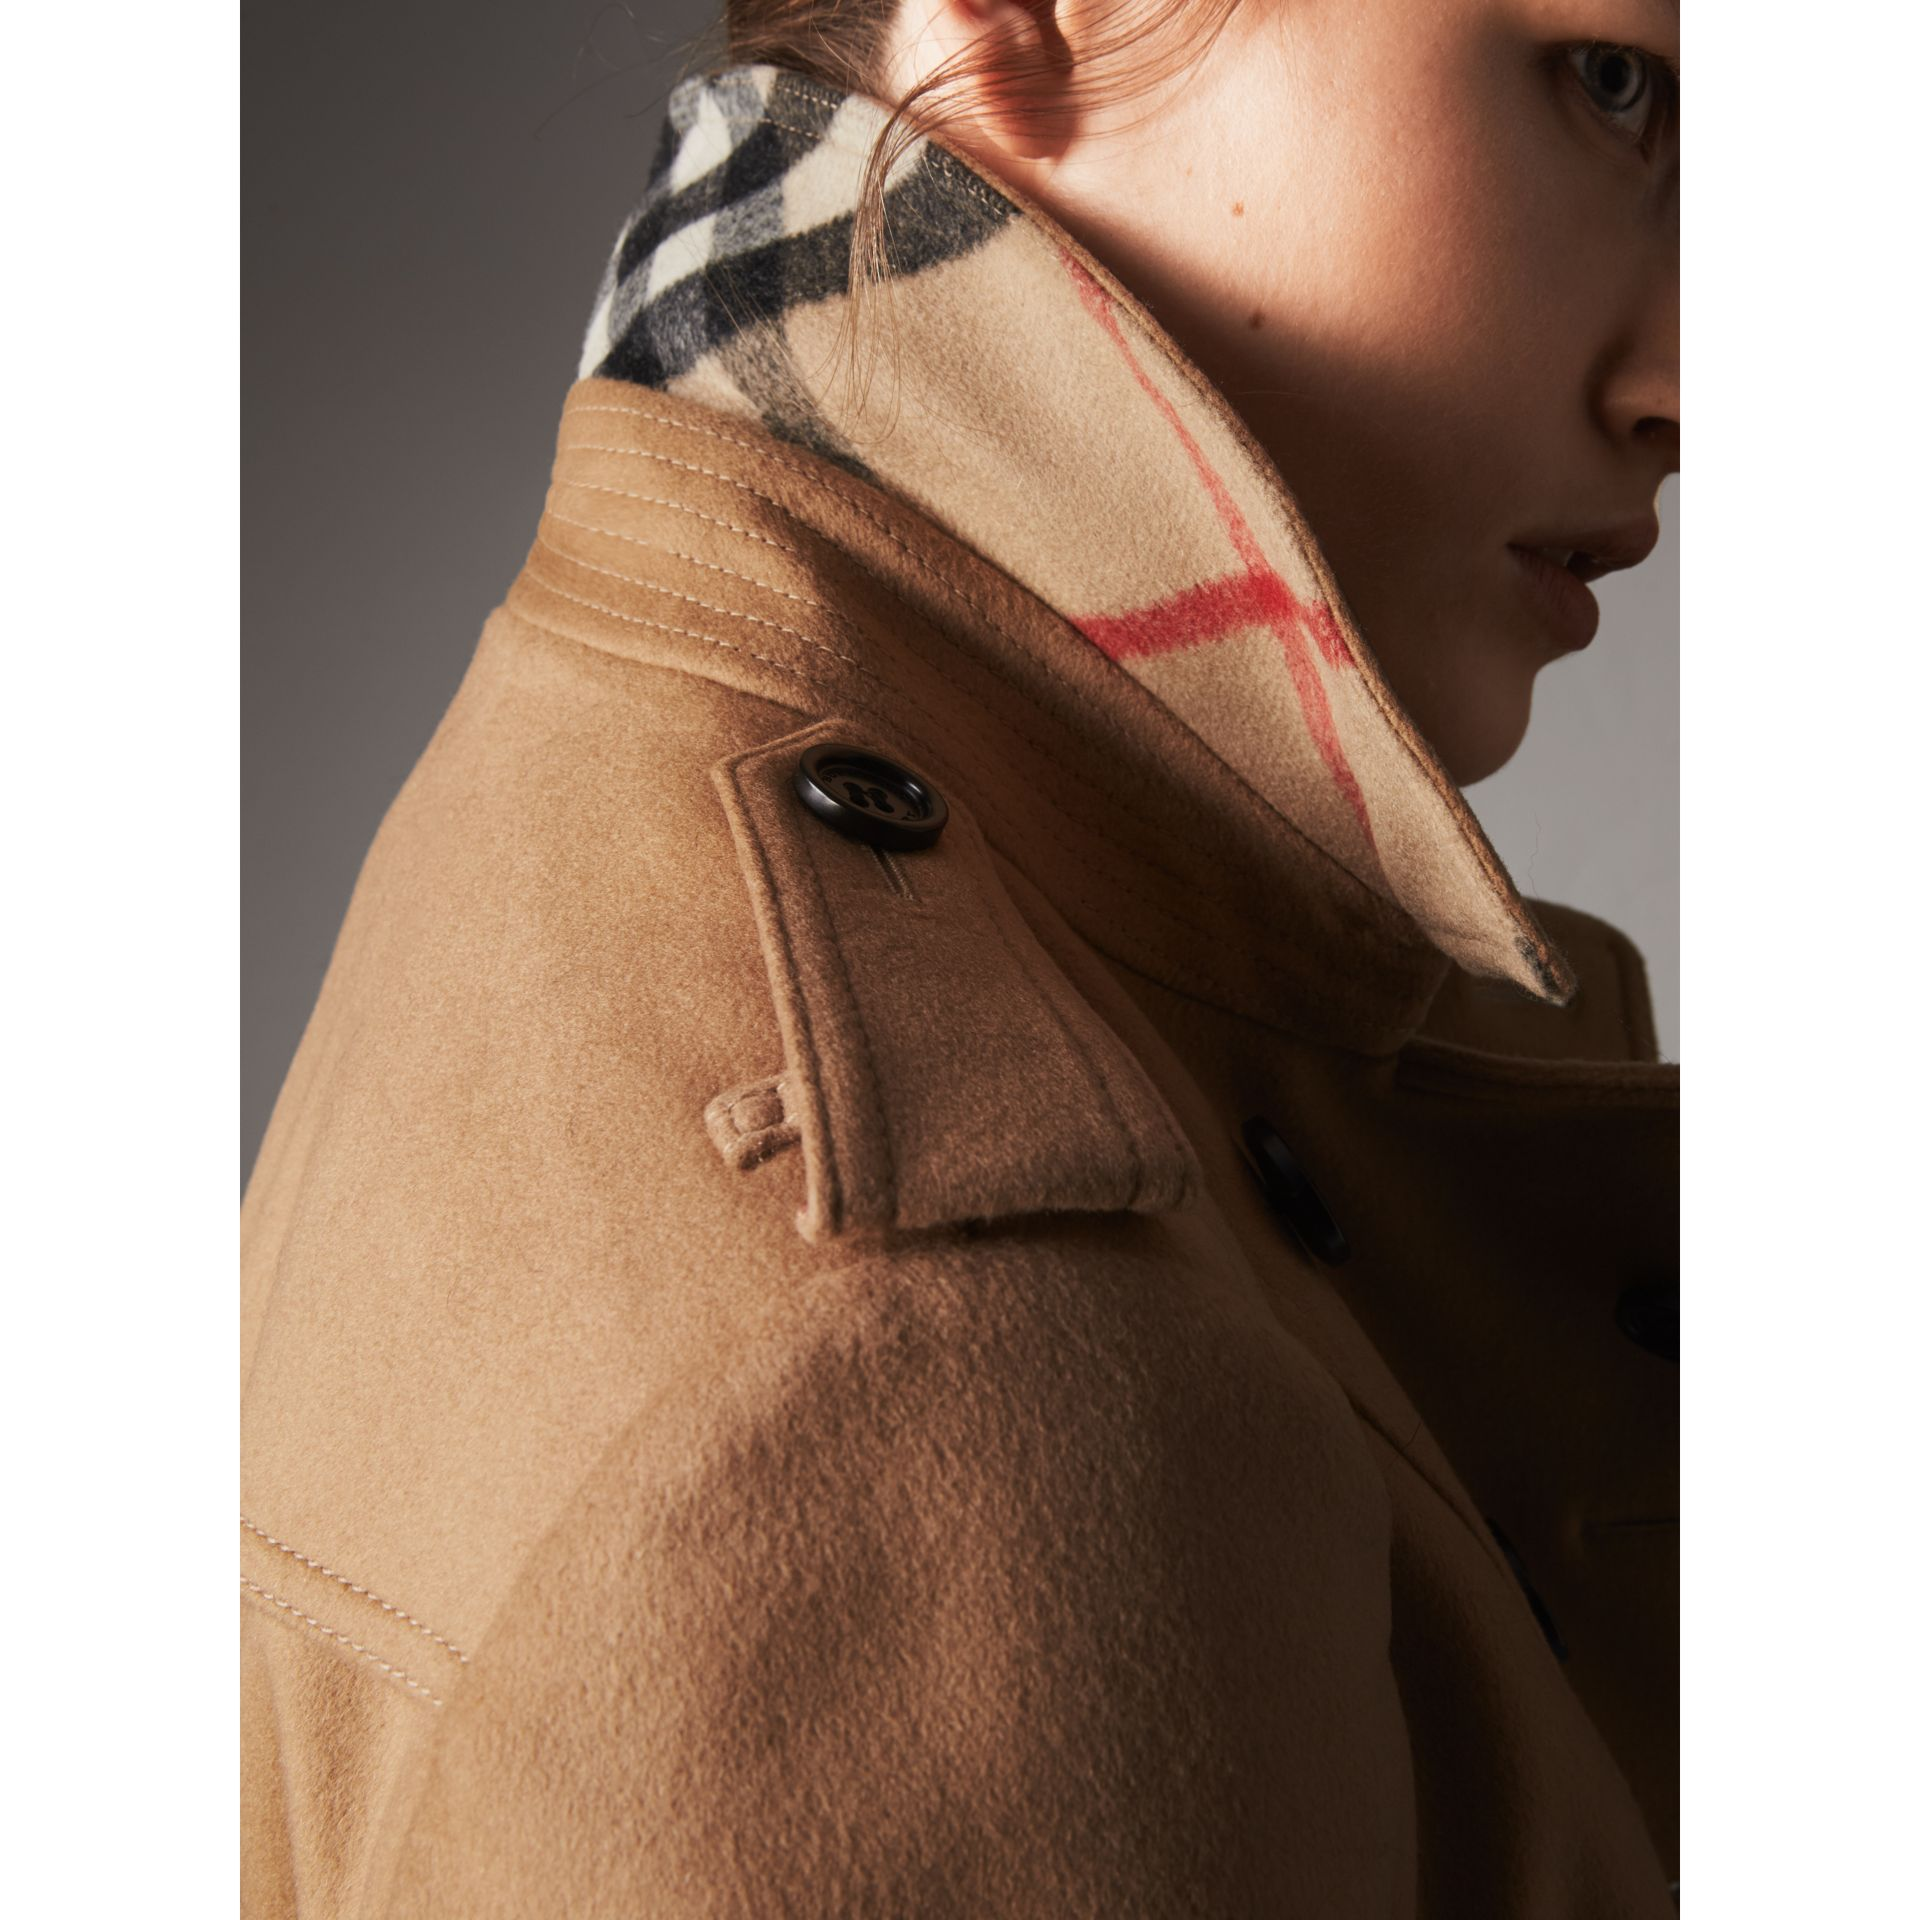 Wool Cashmere Trench Coat with Fur Collar in Camel - Women | Burberry United Kingdom - gallery image 4